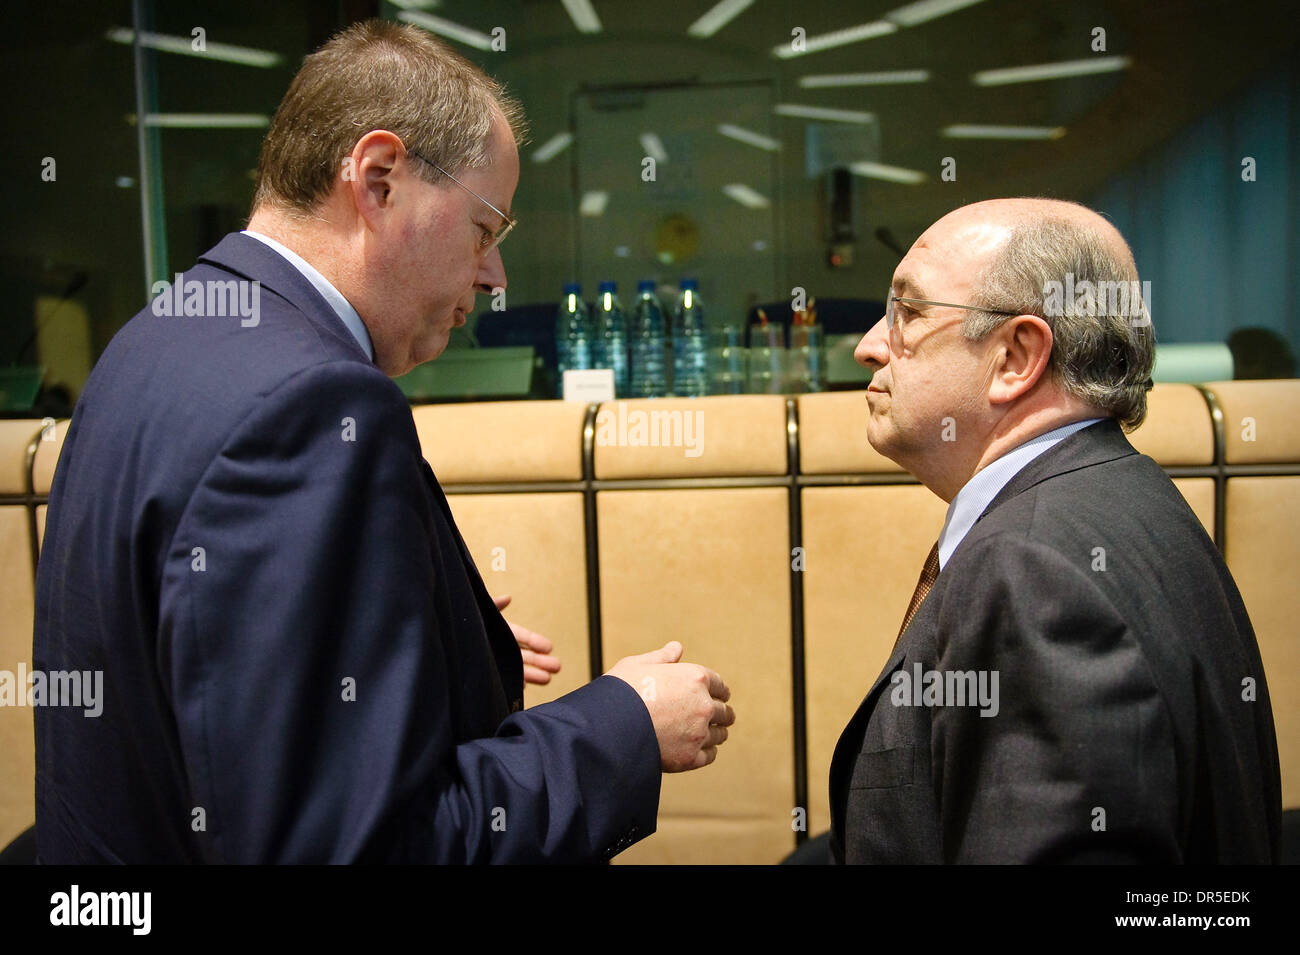 Mar 09, 2009 - Brussels, Belgium - European Monetary Affairs Commissioner, Spanish, JOAQUIN ALMUNIA chats with German Finance Minister PEER STEINBRUECK (L) at the start of an Eurogroup Finance ministers meeting at the European council headquarters. (Credit Image: © Wiktor Dabkowski/ZUMA Press) - Stock Image